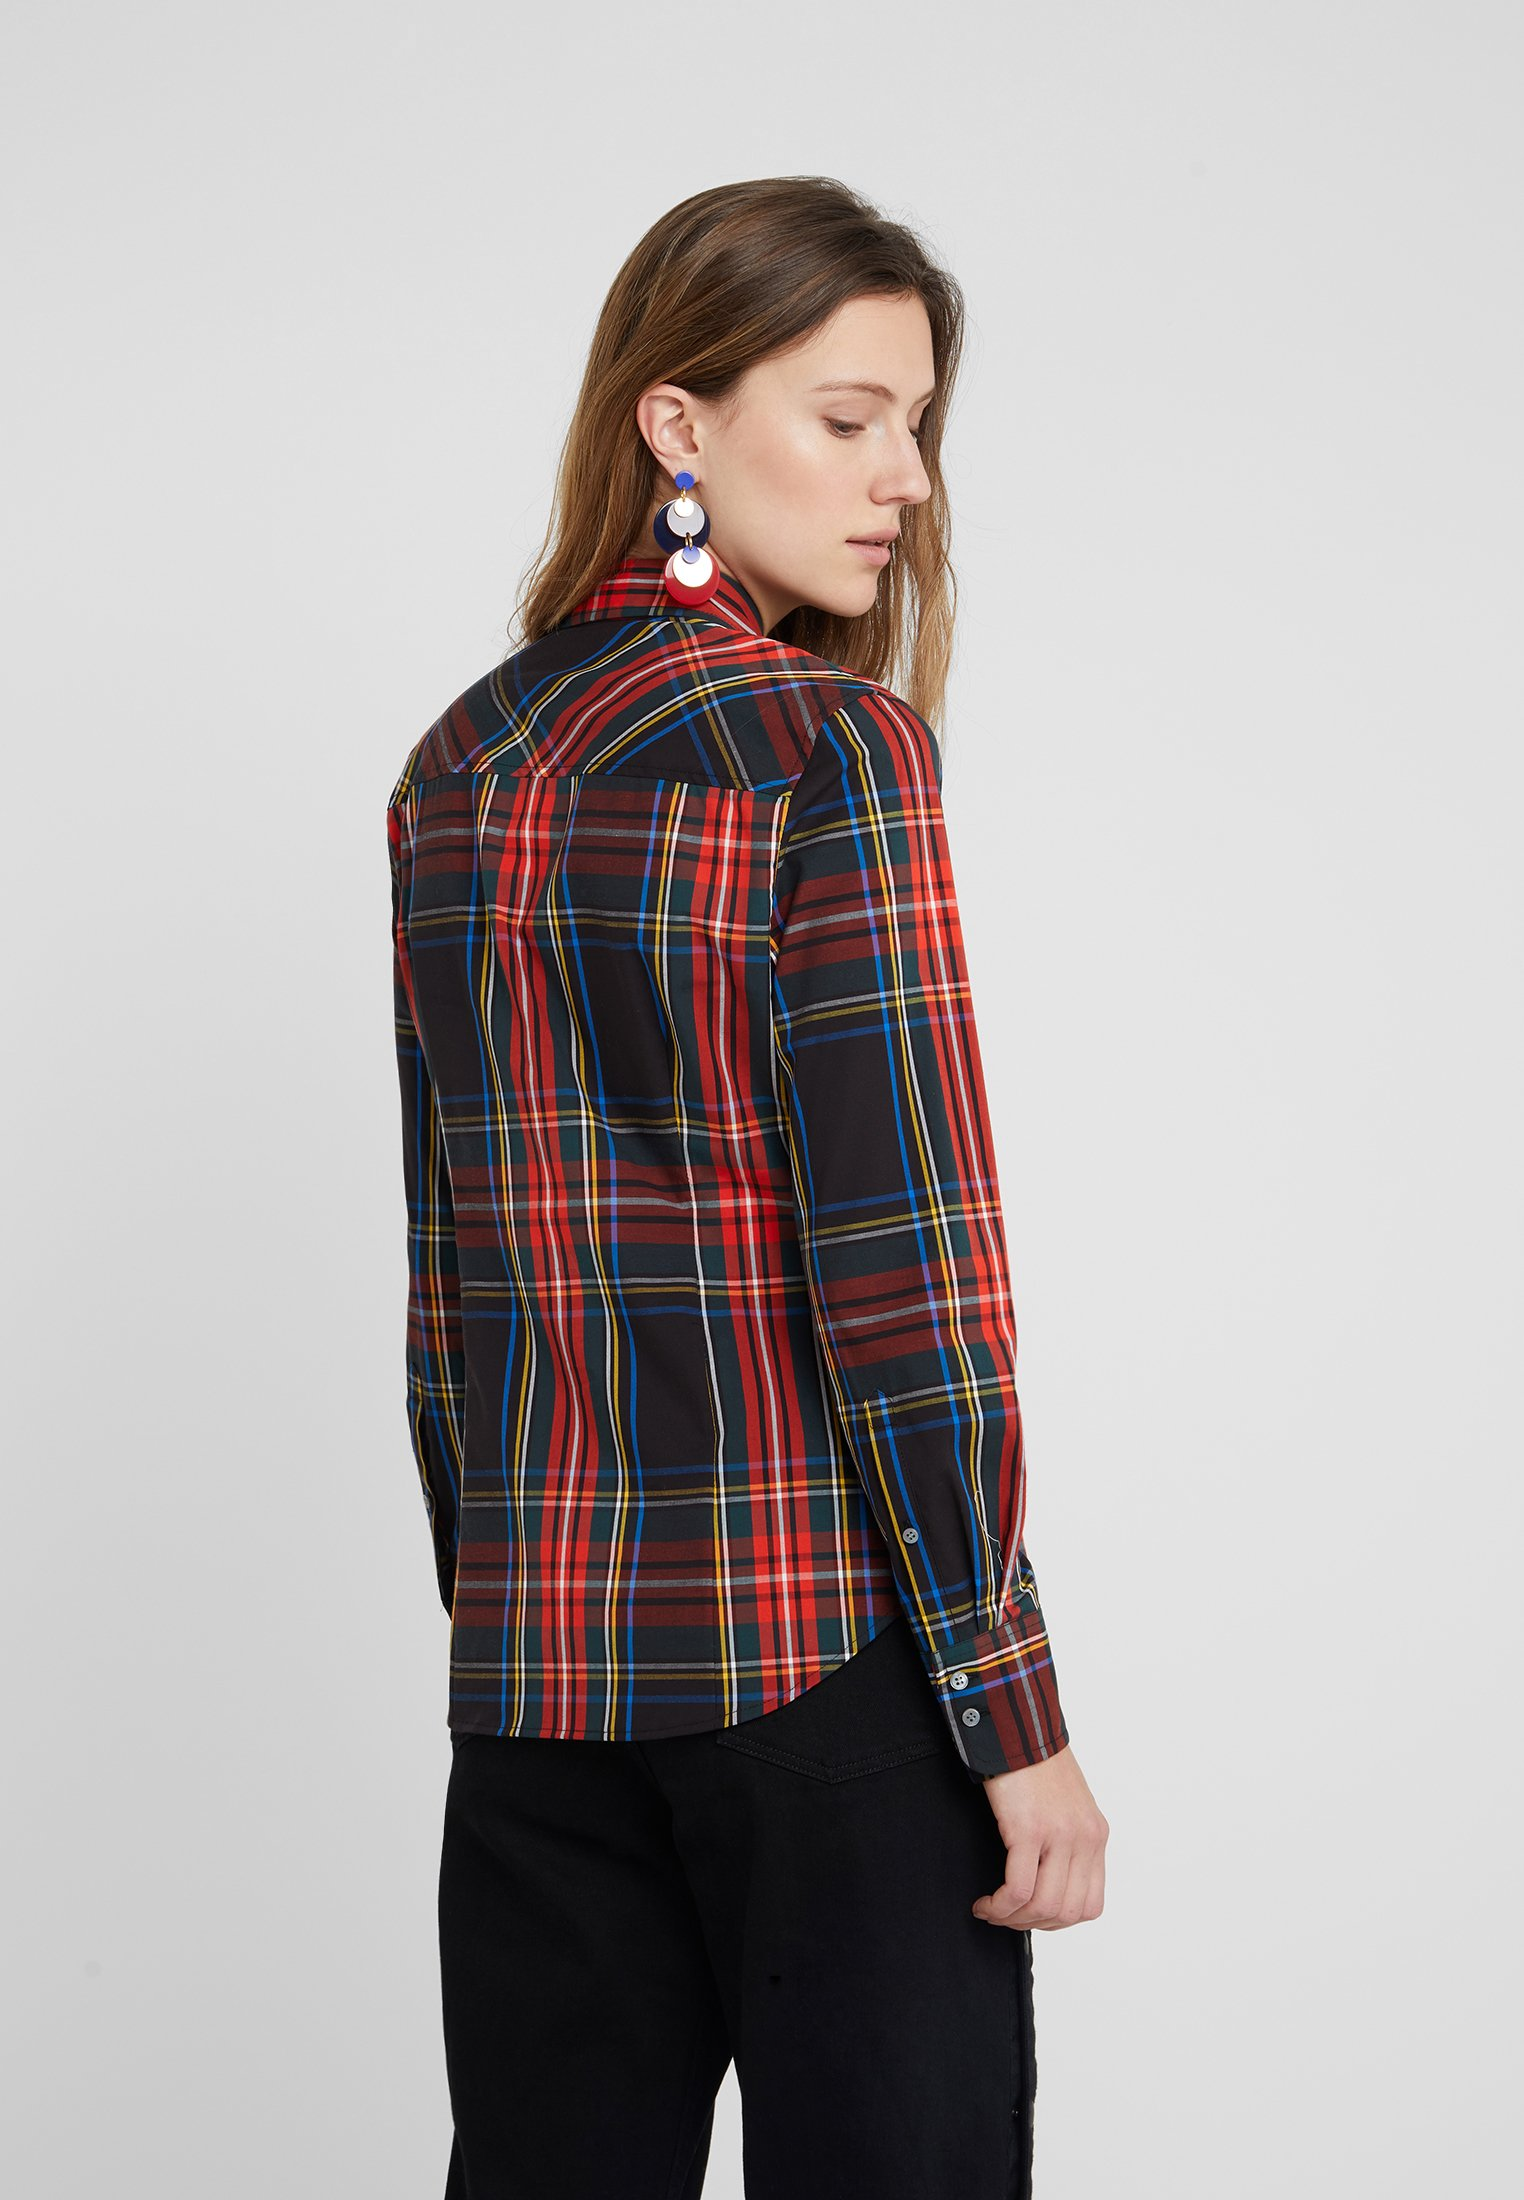 J.CREW PERFECT IN STEWART PLAID SLIM FIT - Skjorte - red/green/multi